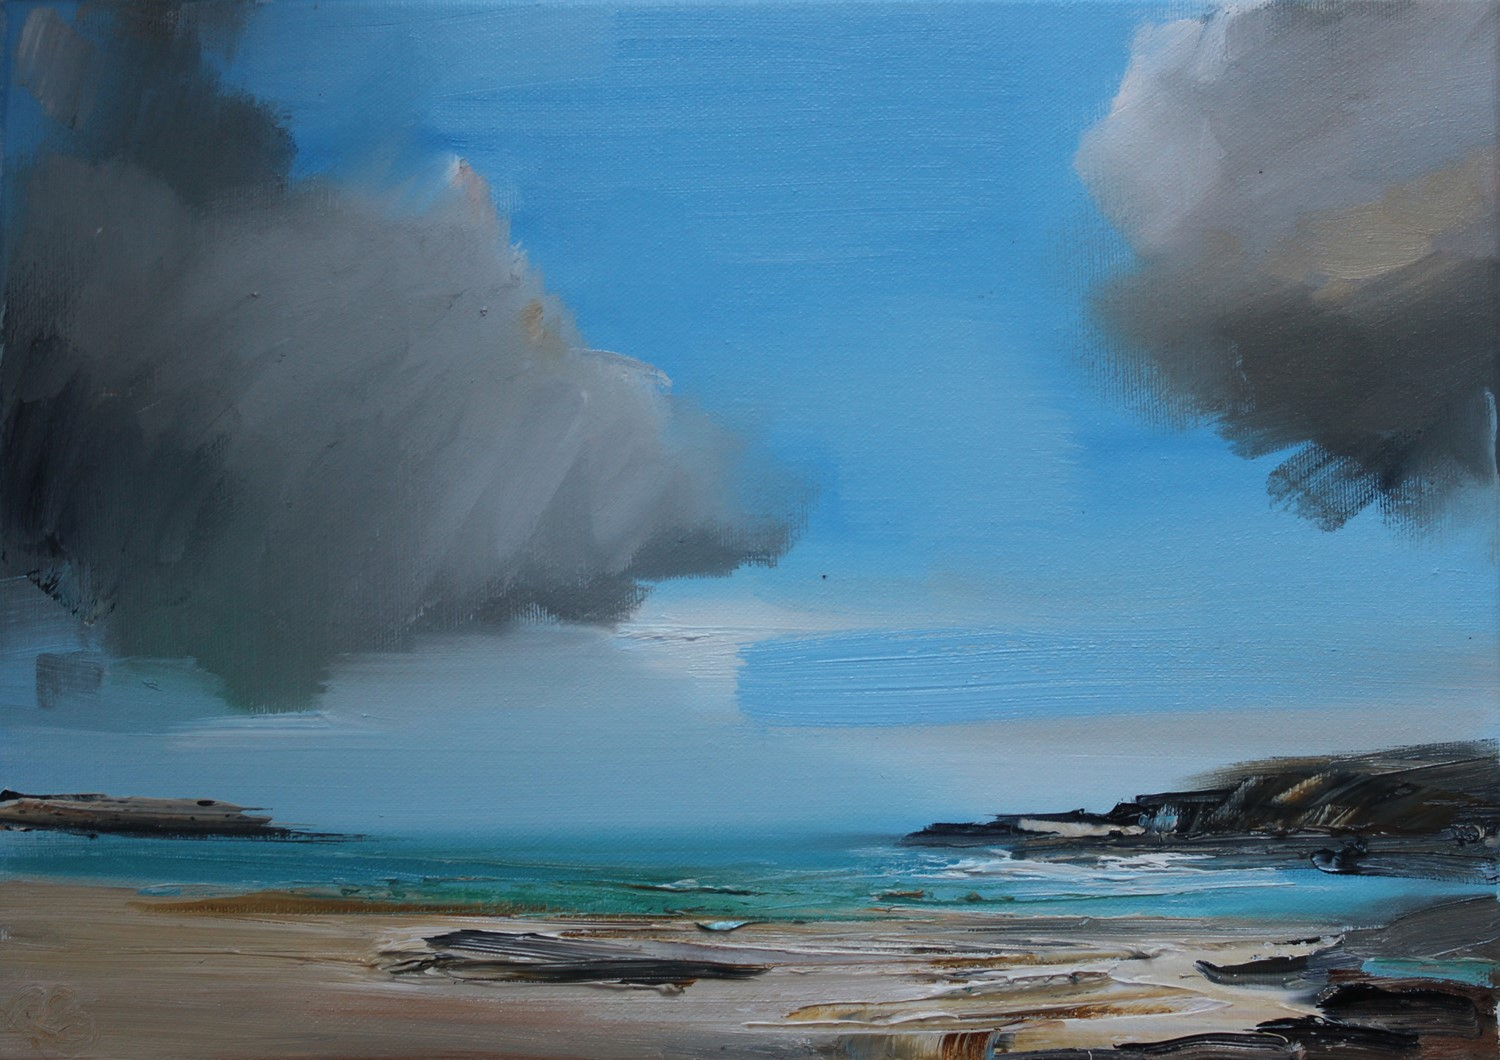 'Heavy Clouds Looming' by artist Rosanne Barr